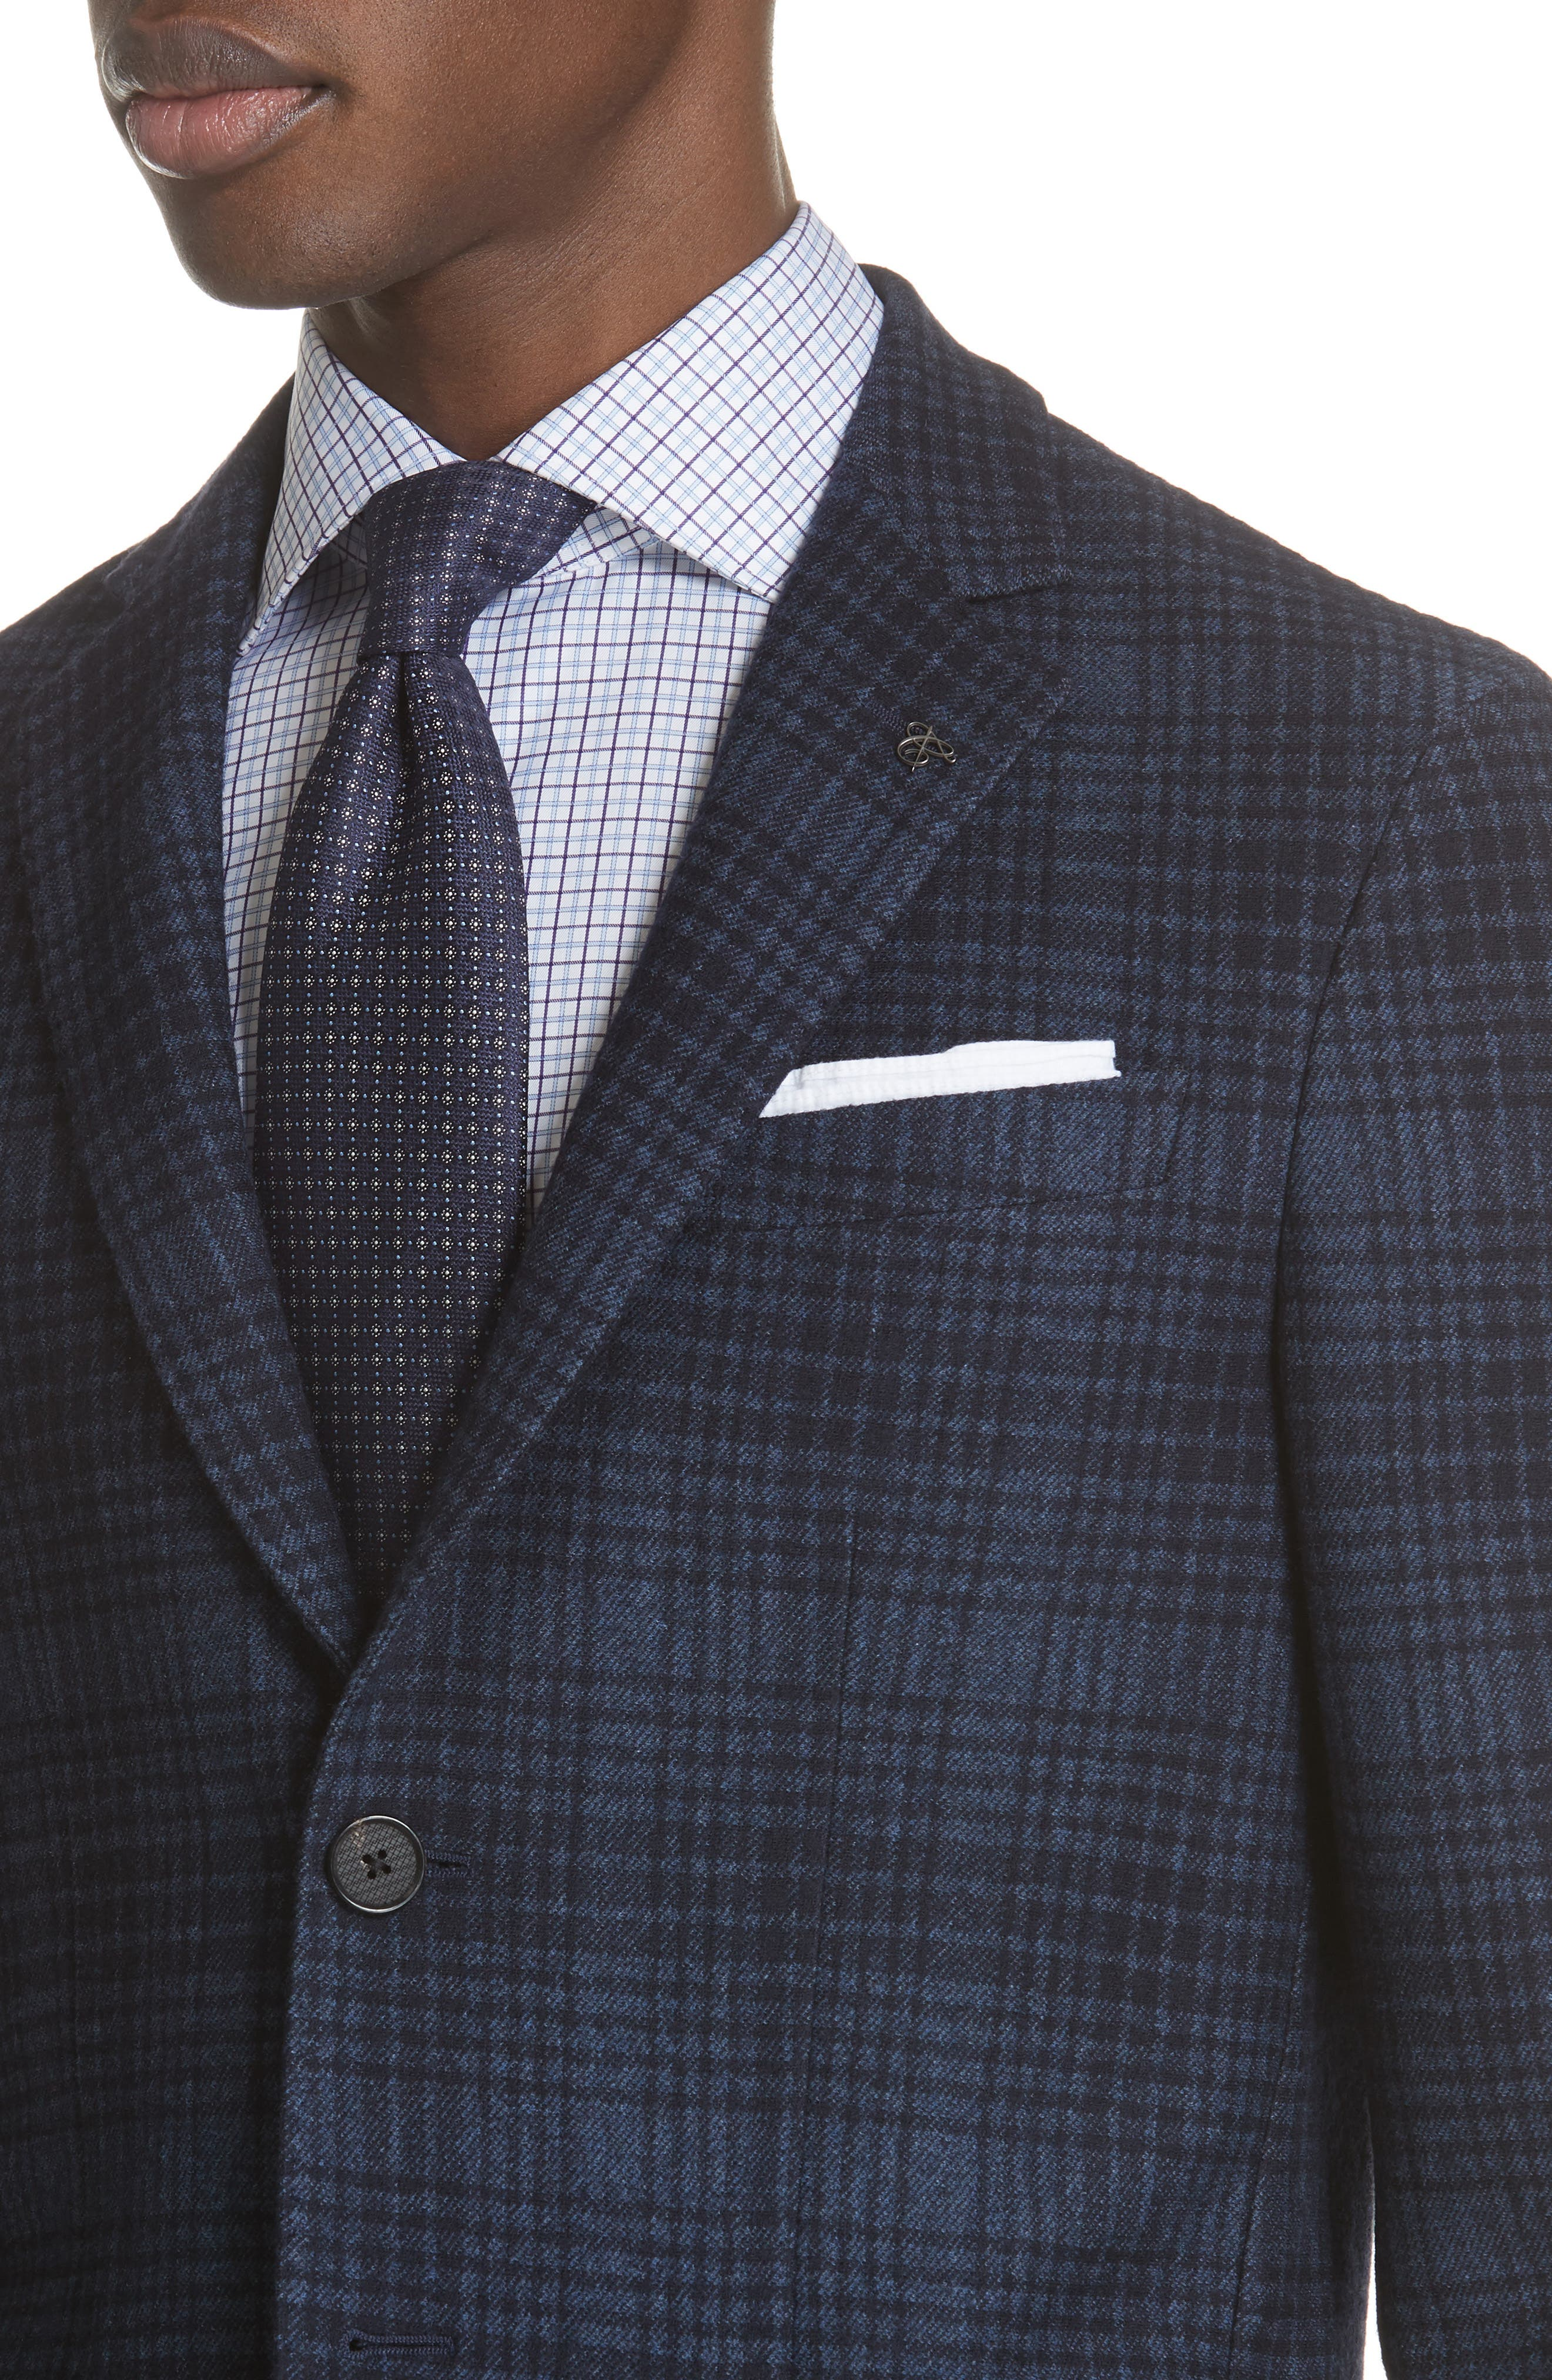 Slim Fit Plaid Wool & Cotton Sport Coat,                             Alternate thumbnail 4, color,                             Blue